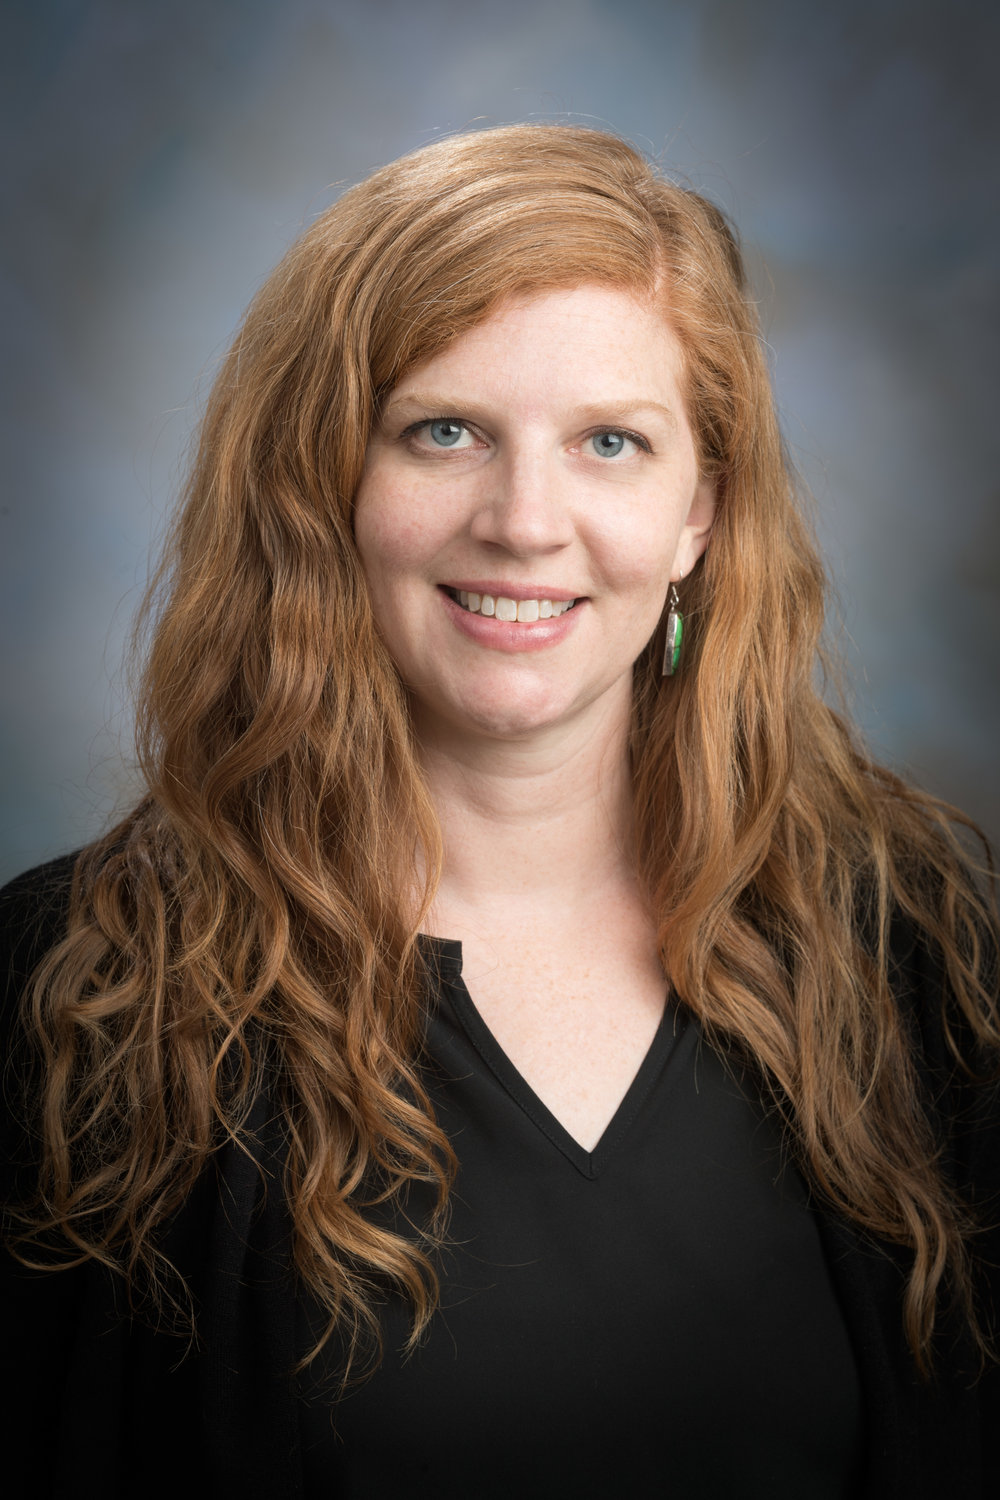 Jessica Metcalf - Associate Professor